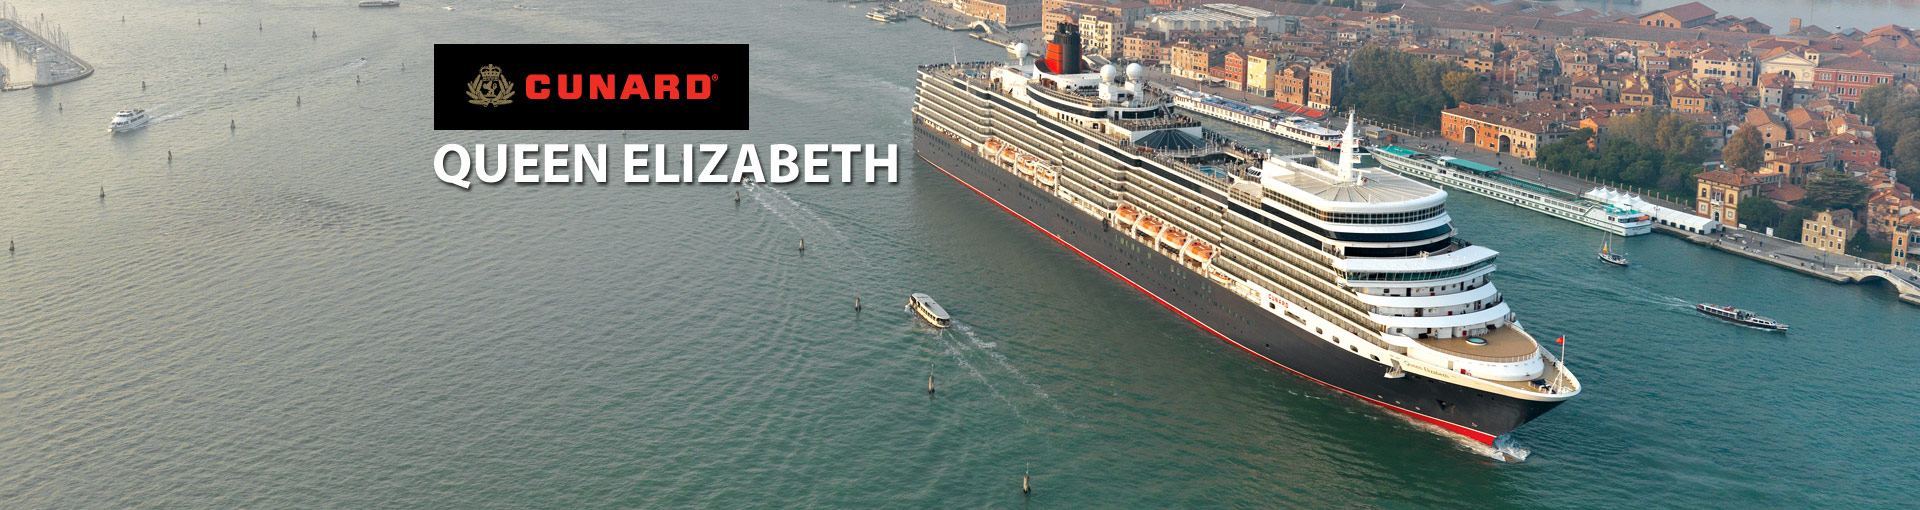 Cunard Line Queen Elizabeth cruise ship